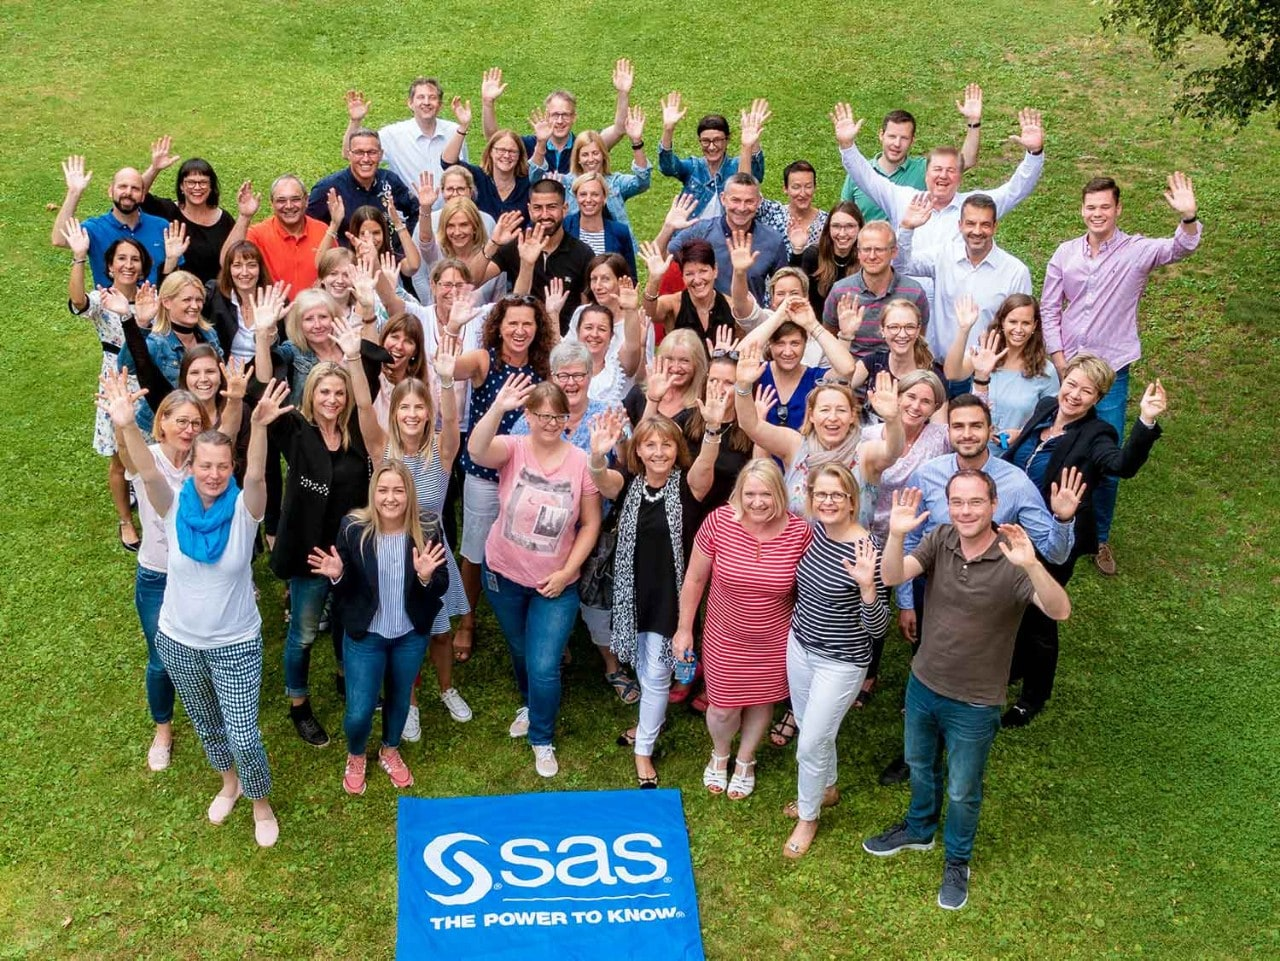 SAS is internationally recognized for providing an innovative, supportive workplace paired with a positive employee experience and generous benefits